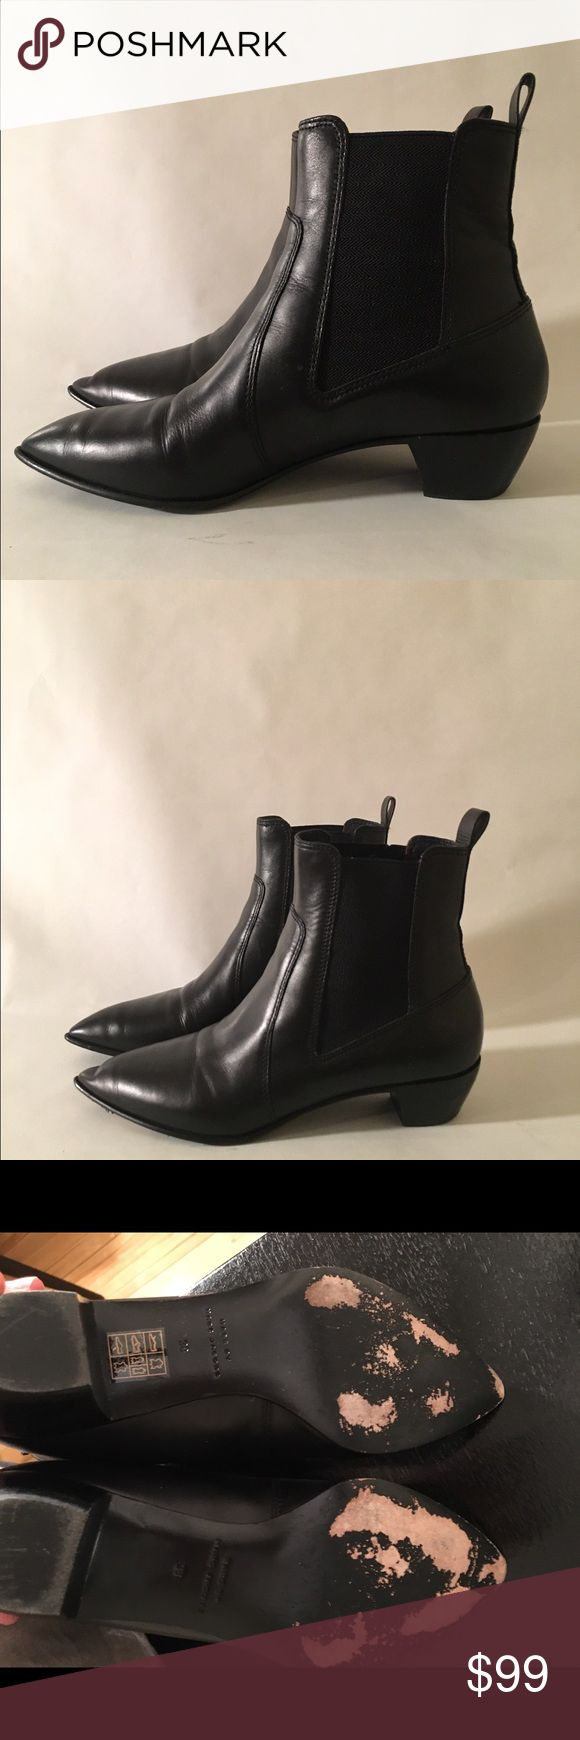 Marc by Marc Jacobs Leather Chelsea Boots Women's Black Reboot Lou Leather Chelsea Boots. Black leather boots, scuffing on bottom of shoe and crease on left boot toe. Super cute! Too many boots and need to sell. Fits size 38 perfect. 1.5inch heel. Looks cute with minidresses and skinny jeans. Marc by Marc Jacobs Shoes Ankle Boots & Booties